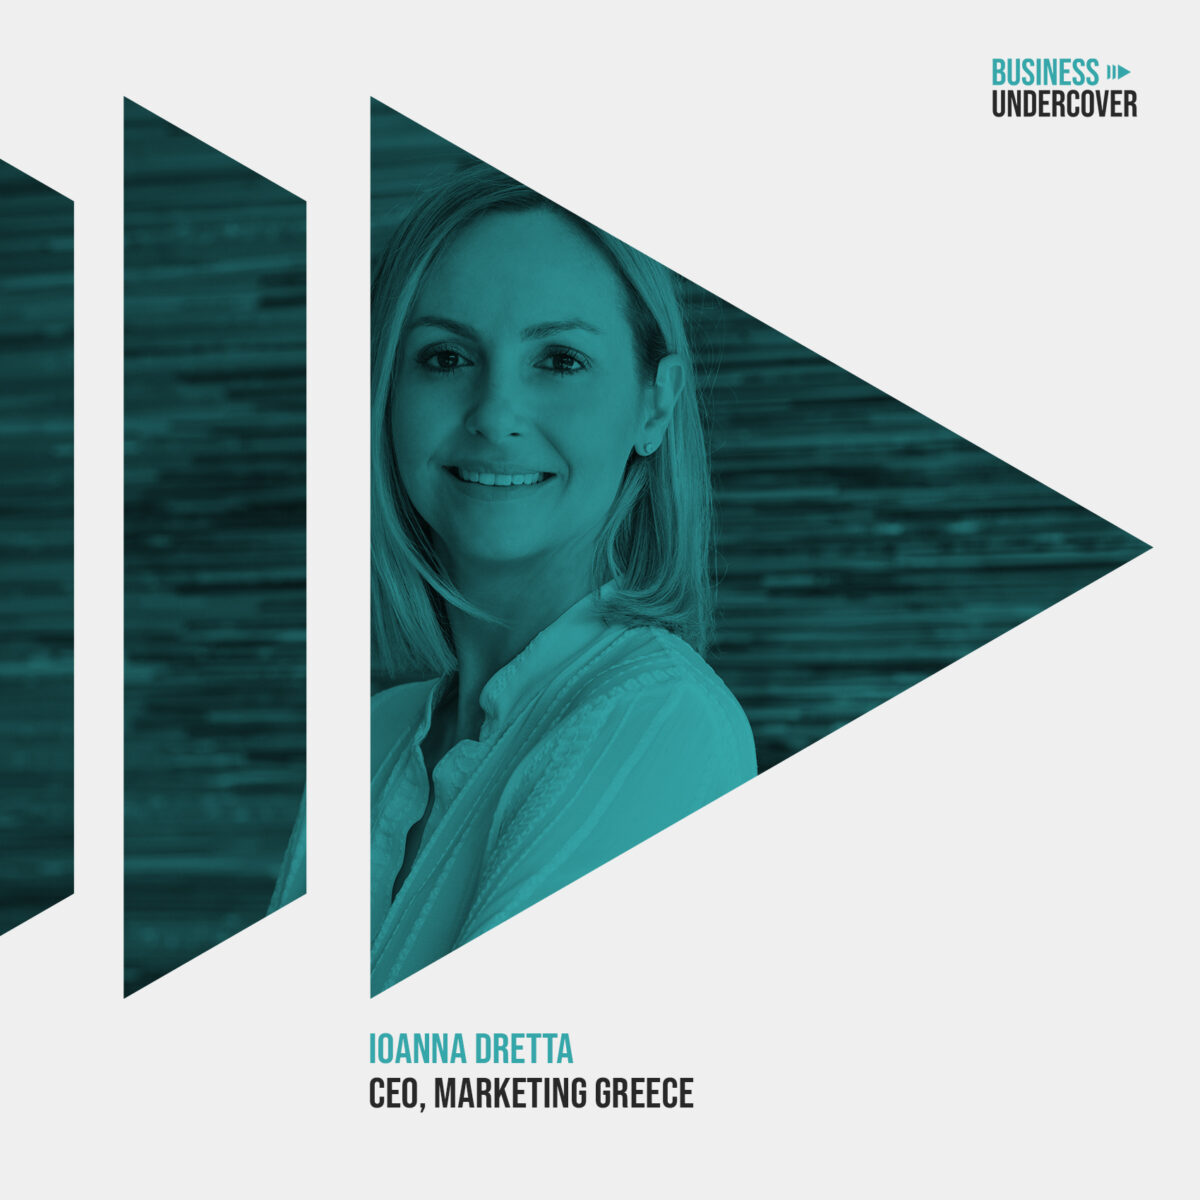 Ioanna Dretta, Marketing Greece